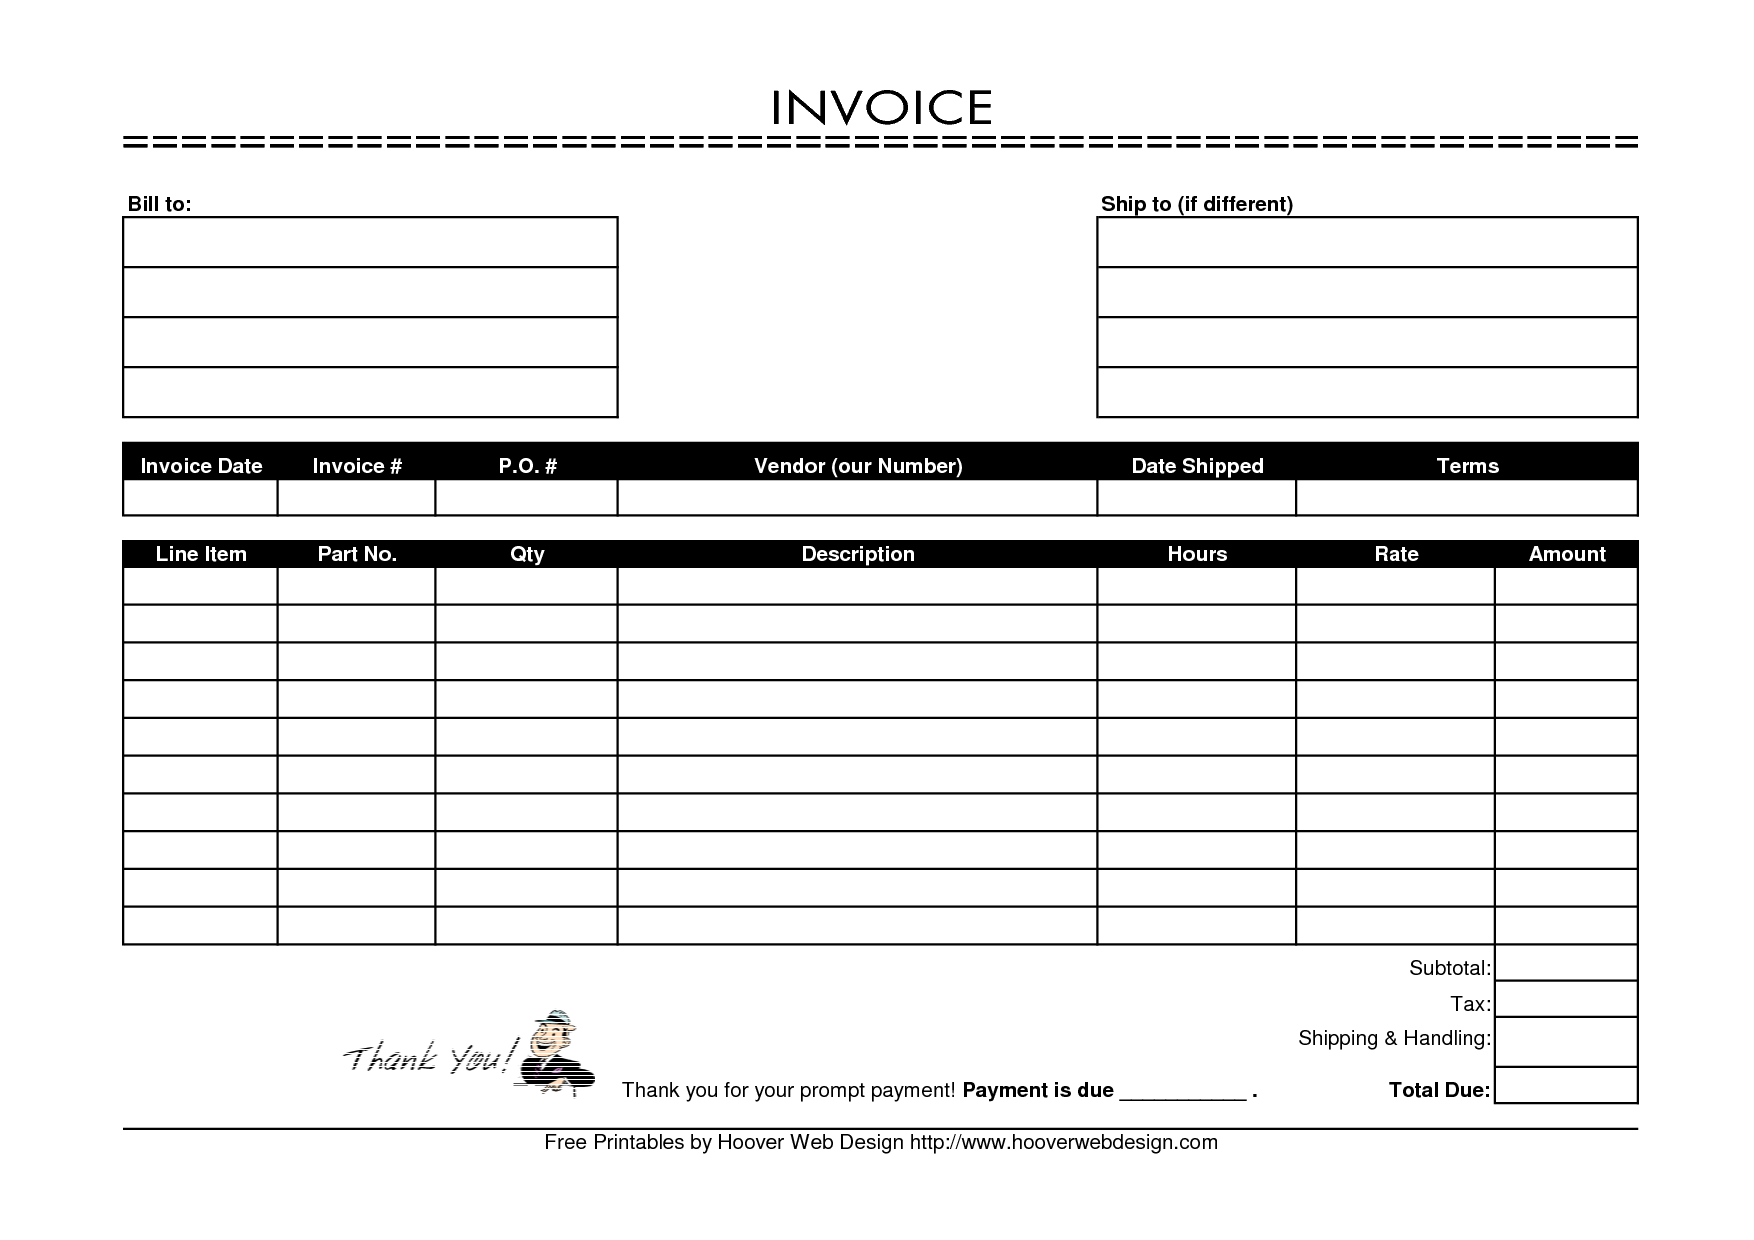 Small Business Invoice Template Free and Free Invoice software Small Business